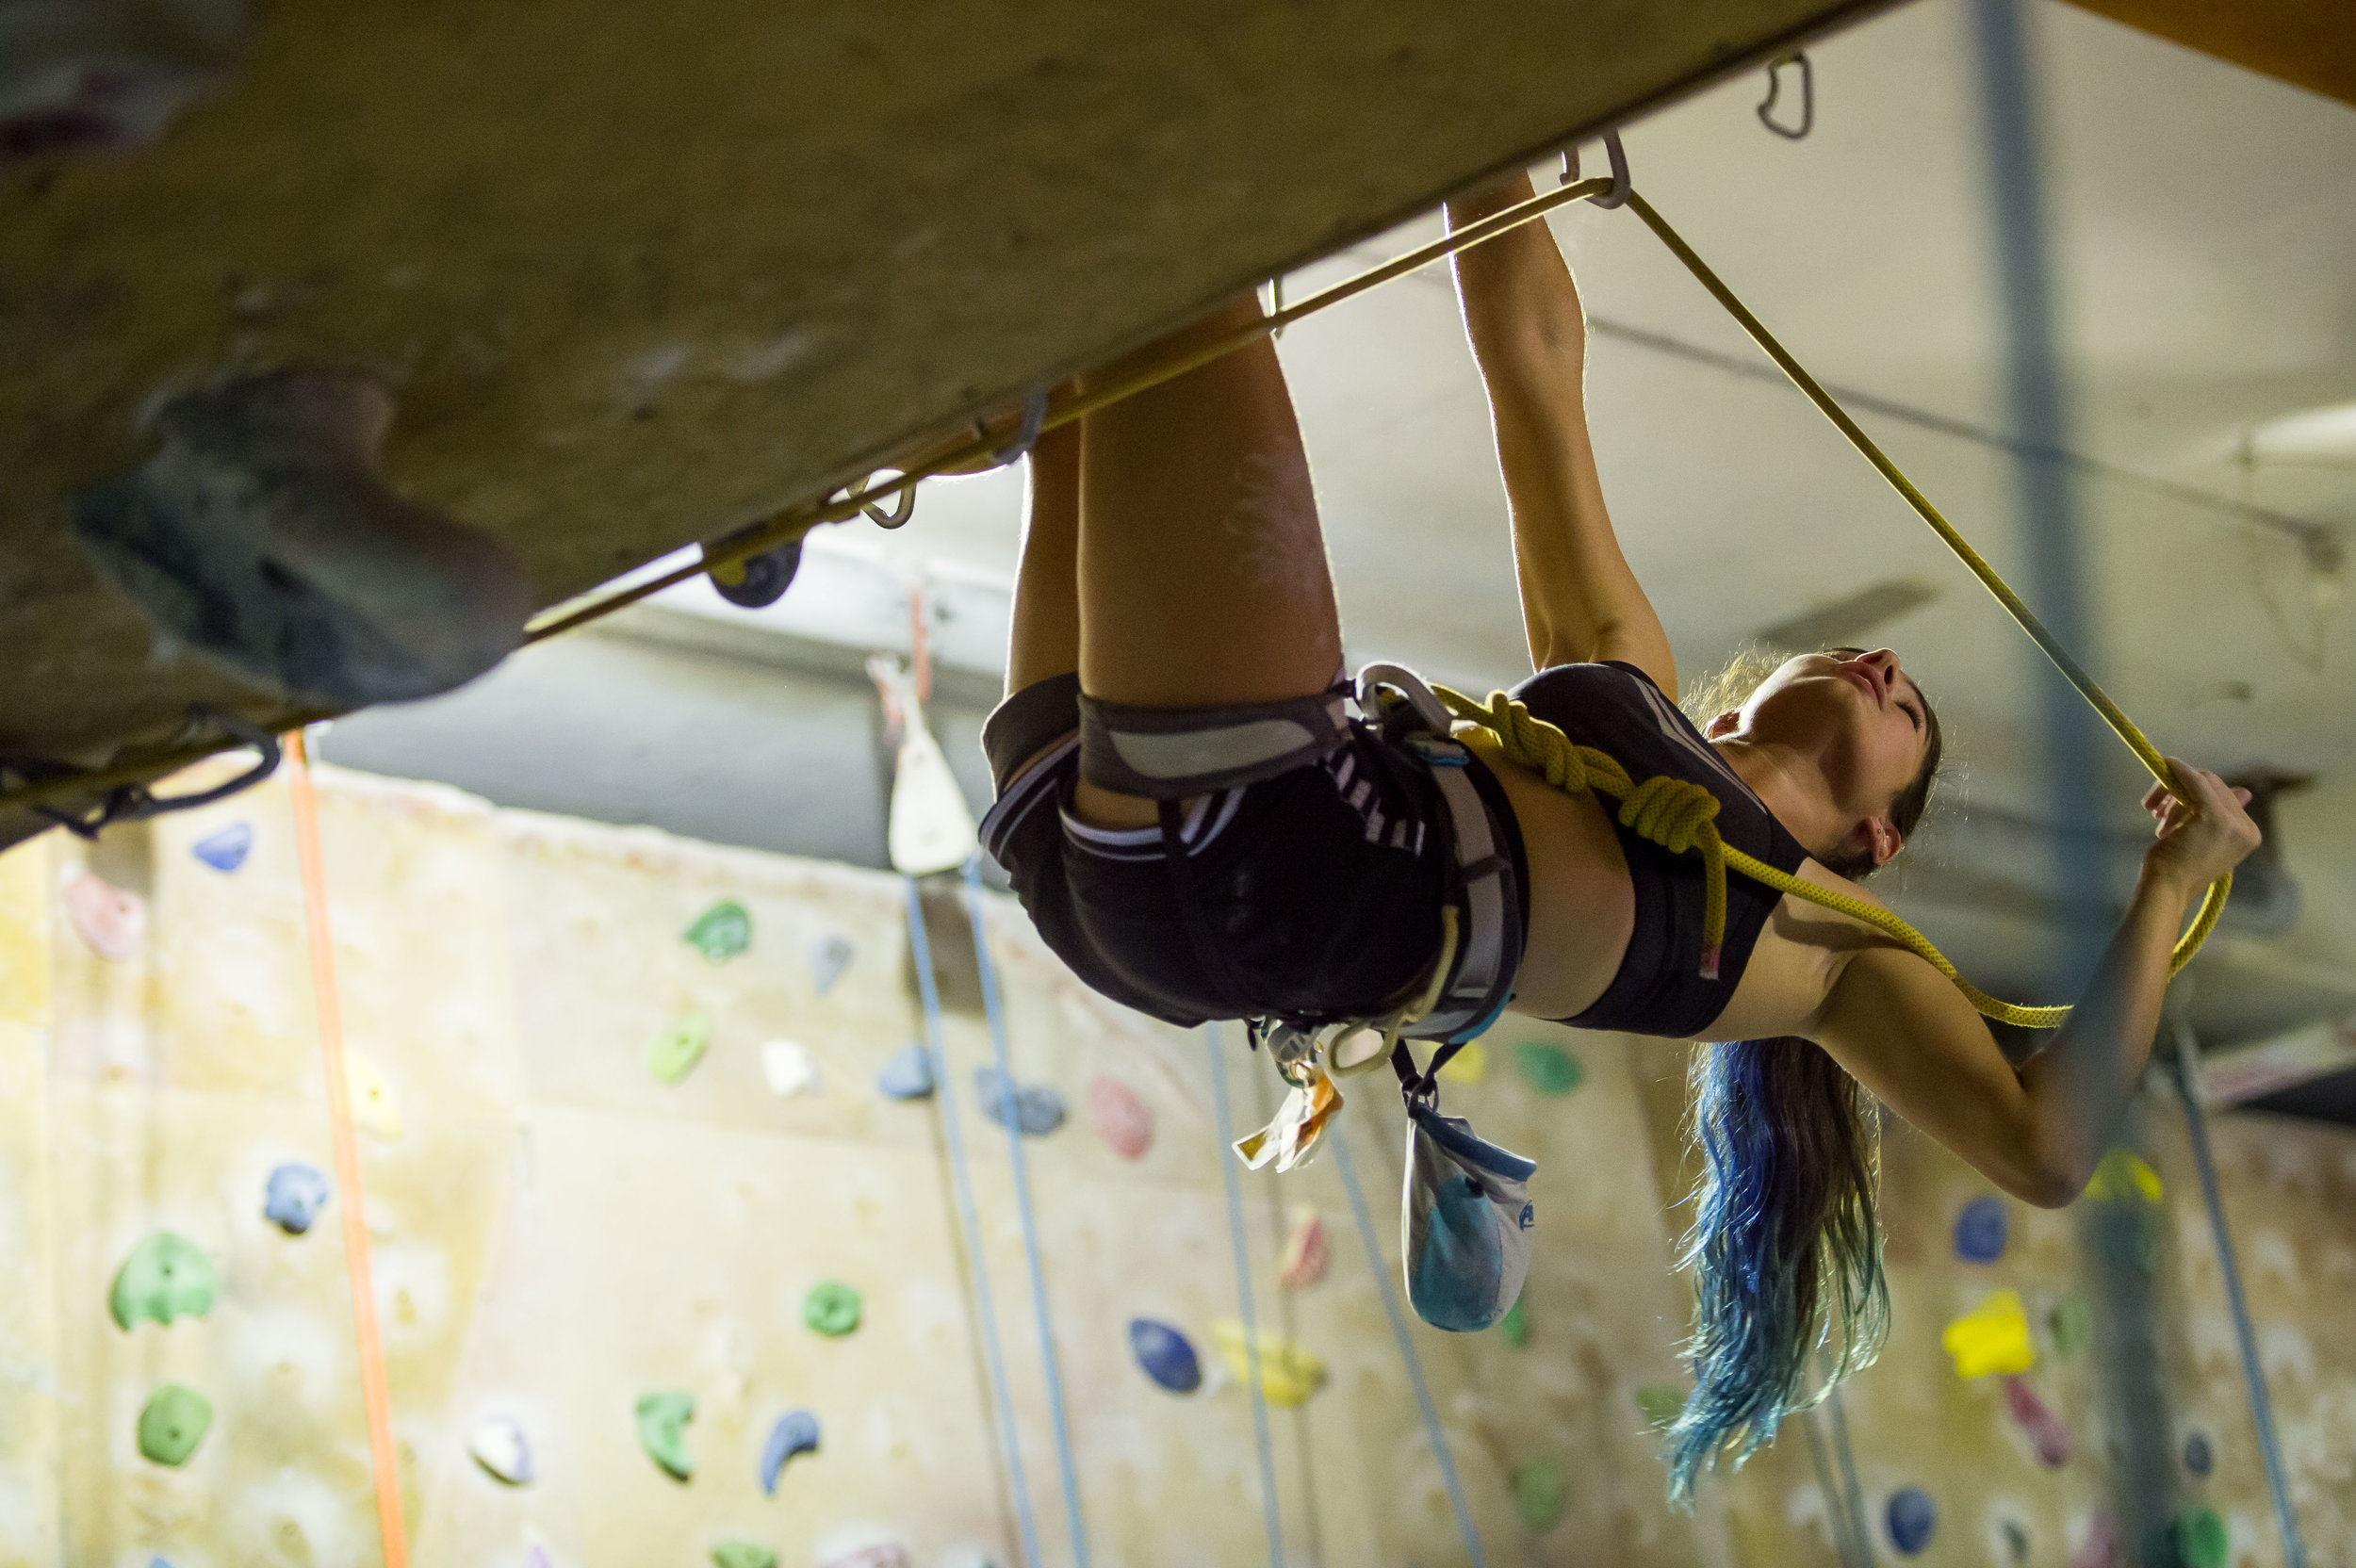 Ladies Social Climbing - WEEKLY - Tuesday Night at 6:30pmClimb with other ladies who are looking for adventure (and a chat). All levels welcome.Normal entry/membership applies.